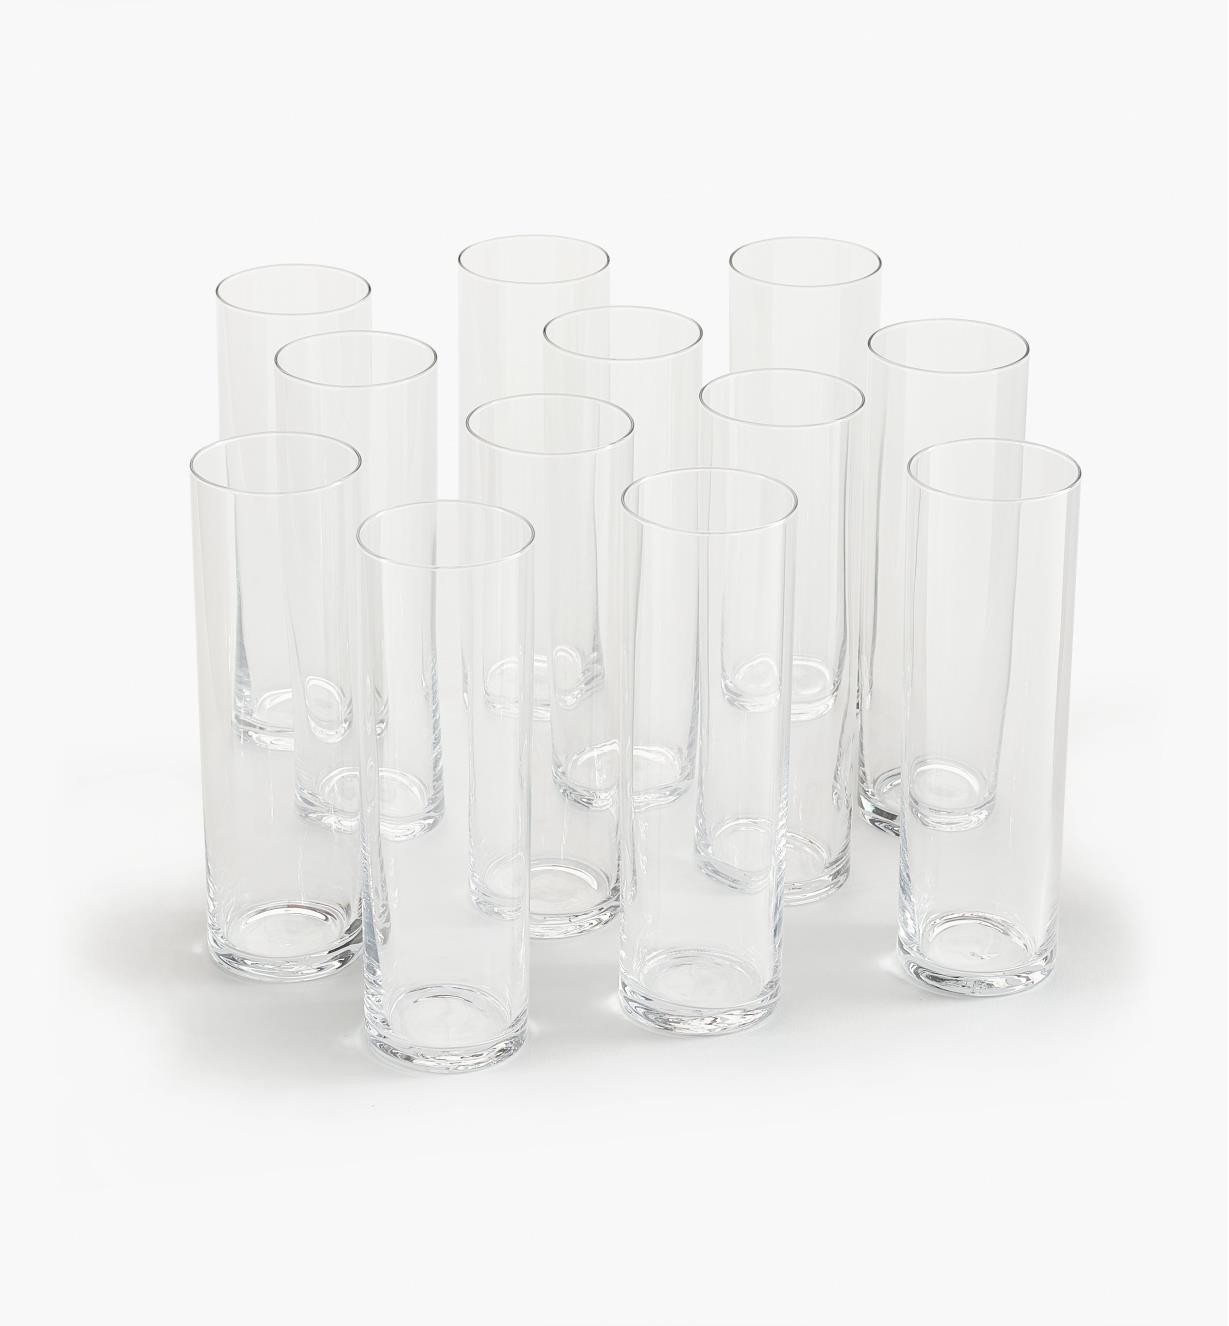 50K1101 - Beer Glasses, set of 12